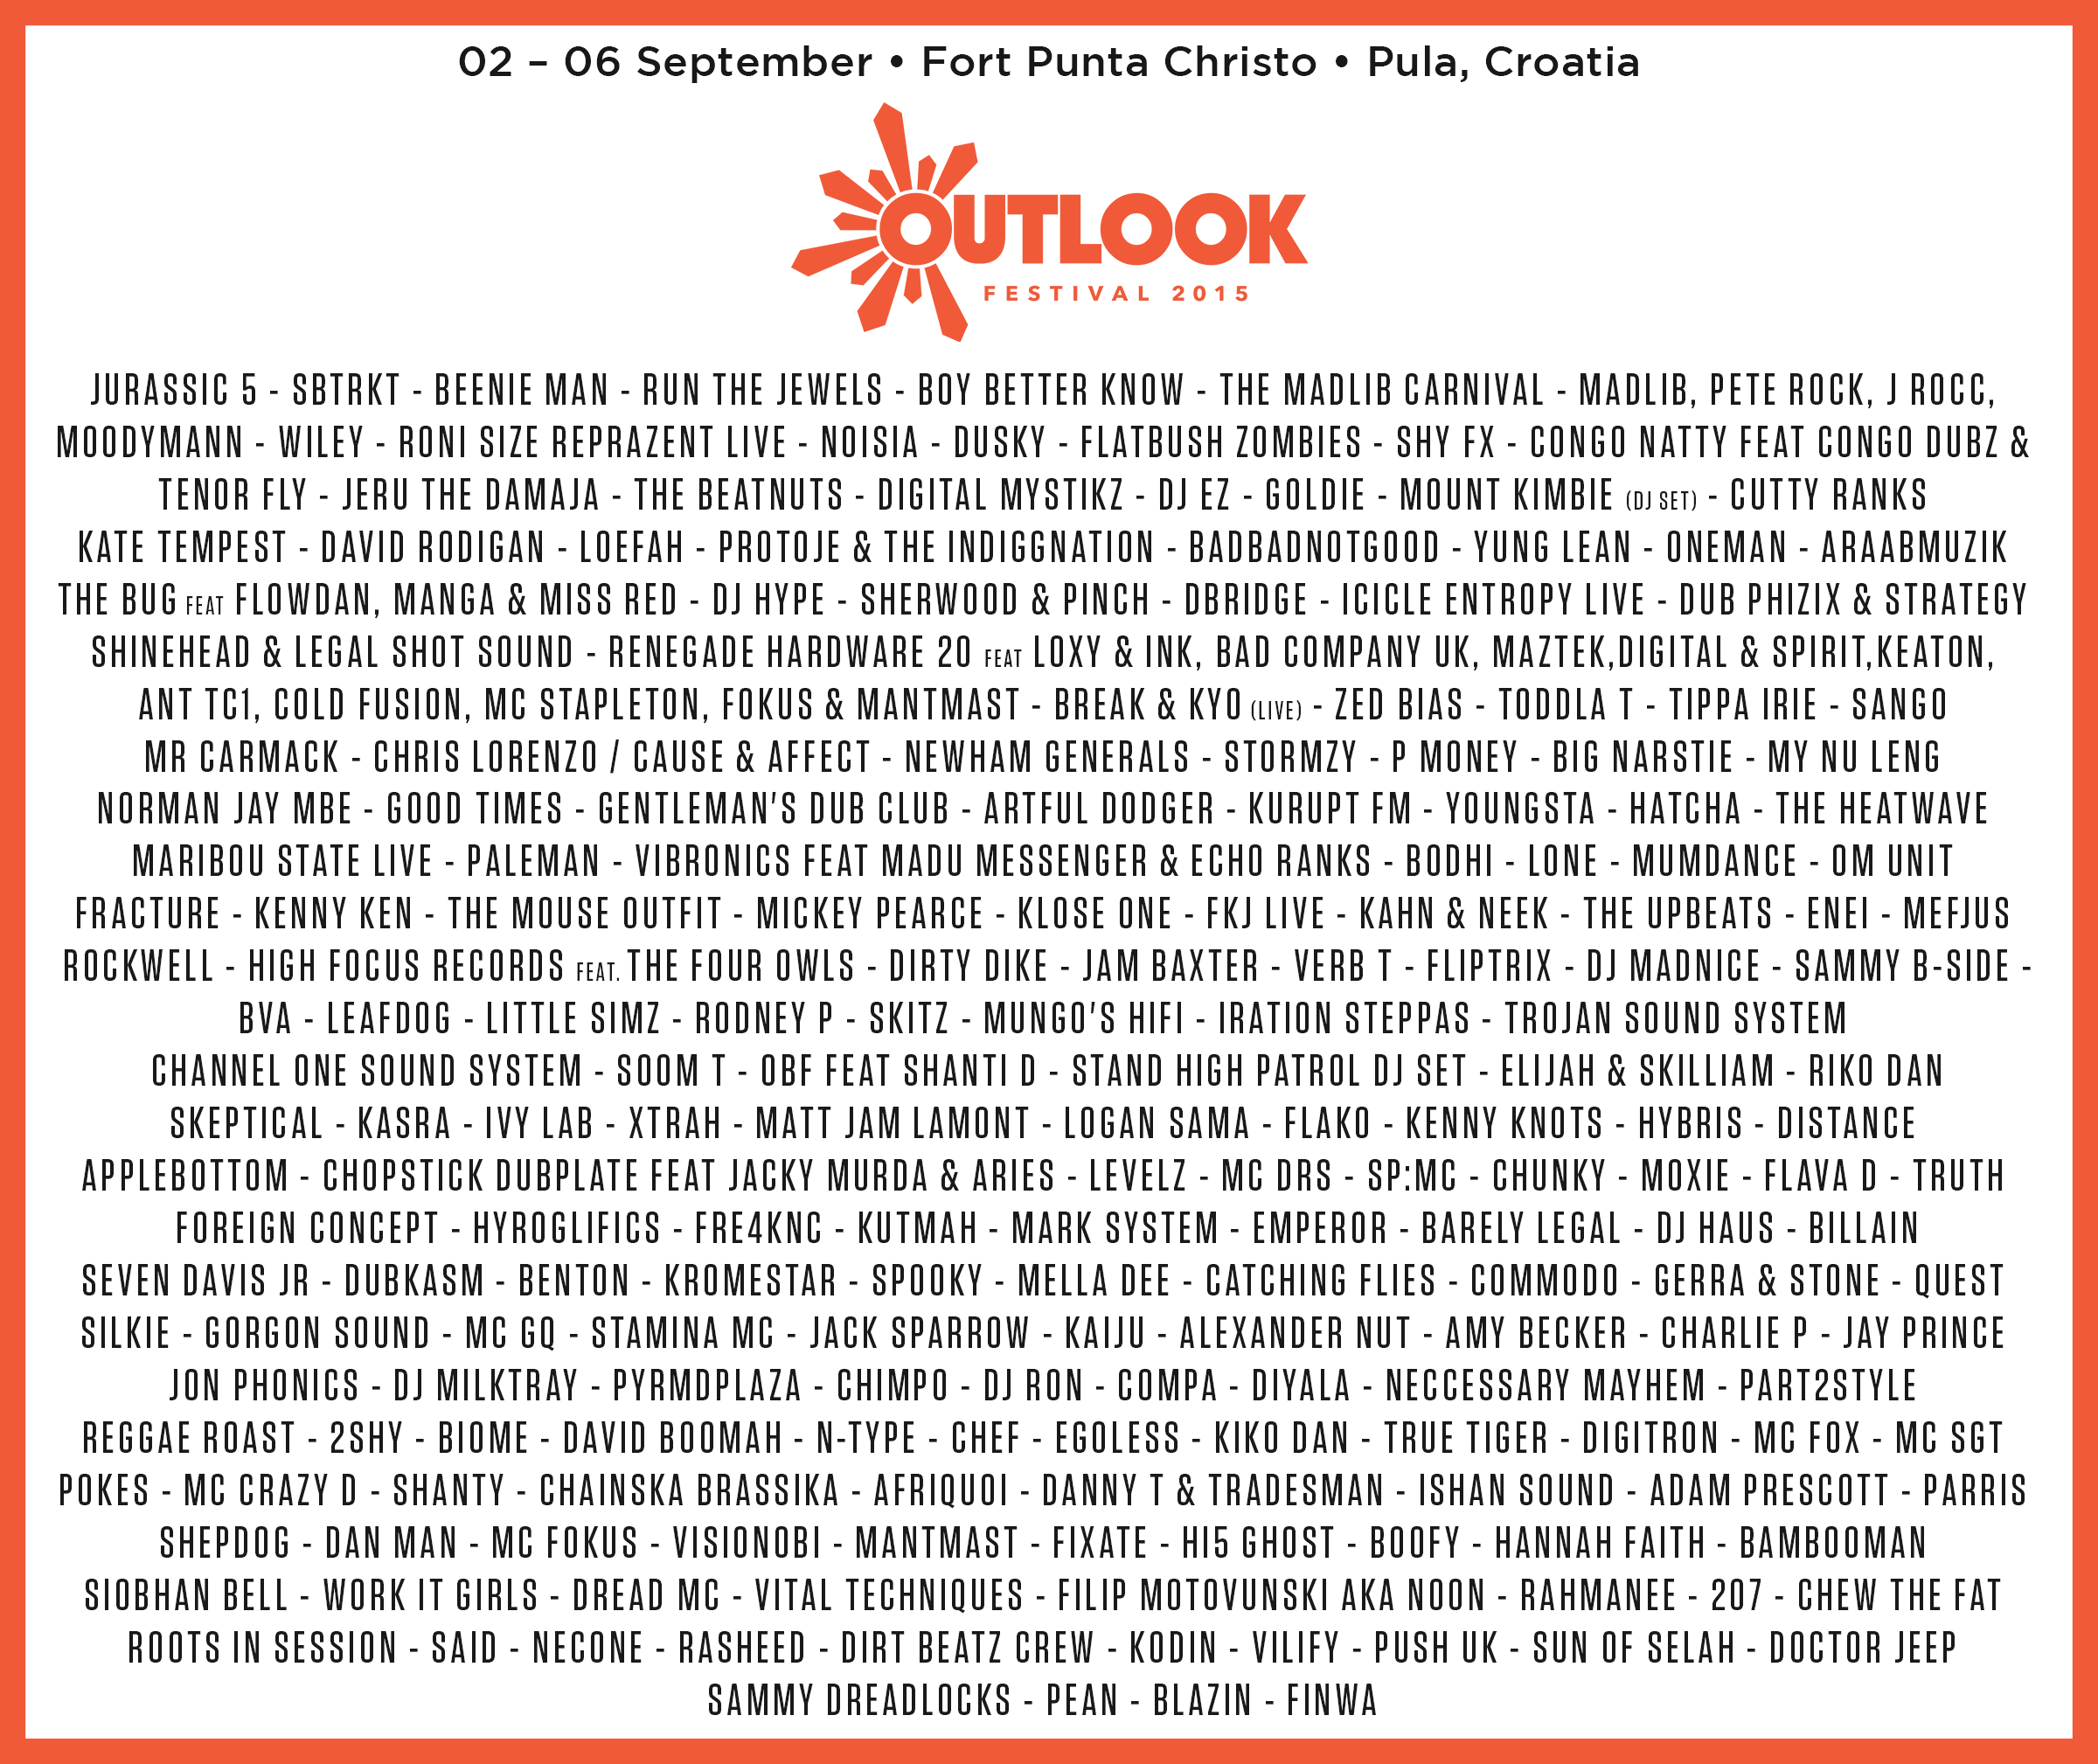 Outlook Festival 2015 - complete lineup flyer